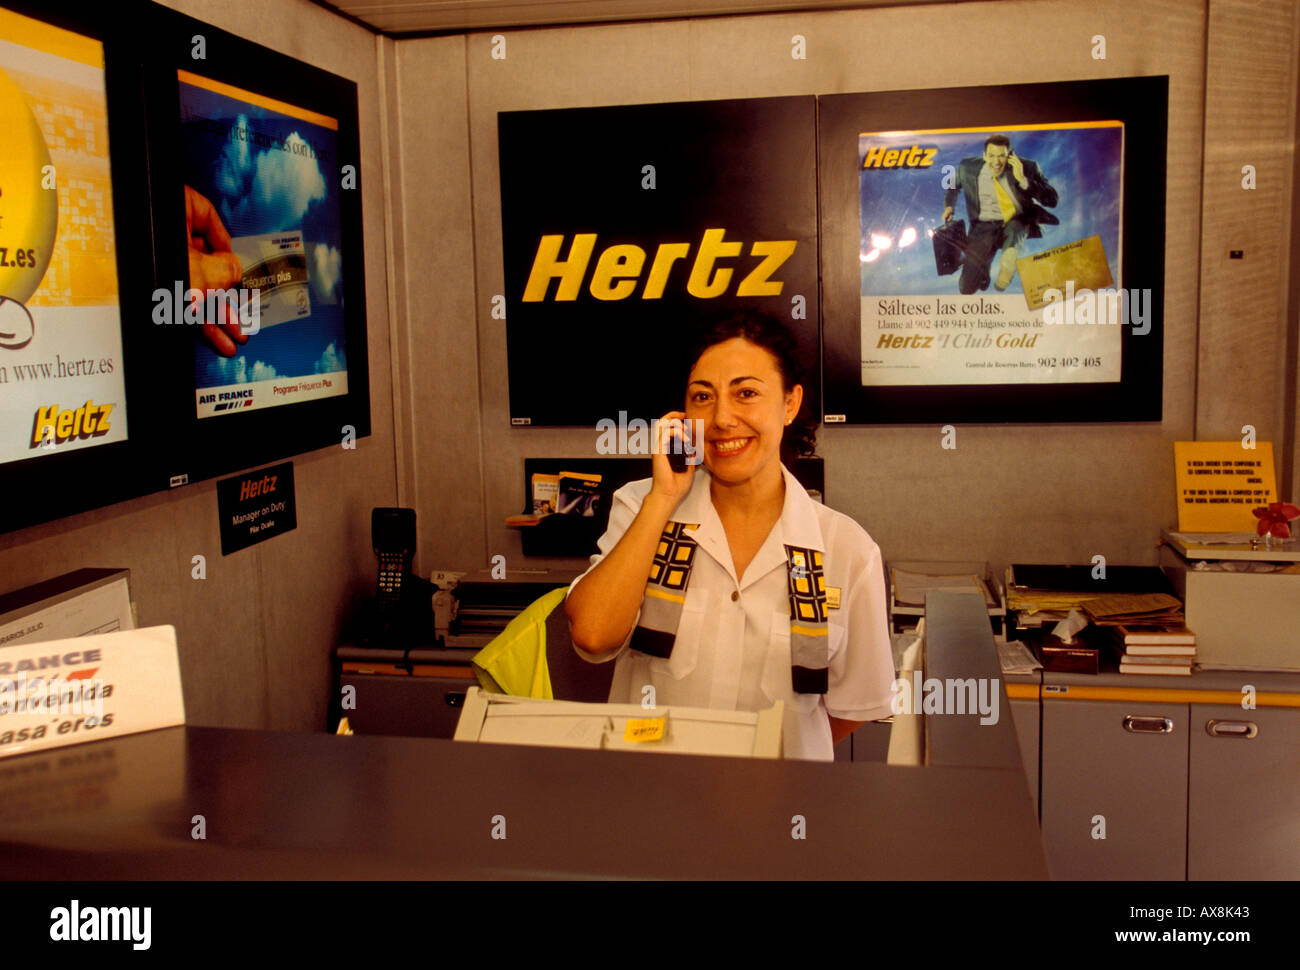 hertz car rental agency barajas international airport madrid stock photo royalty free image. Black Bedroom Furniture Sets. Home Design Ideas